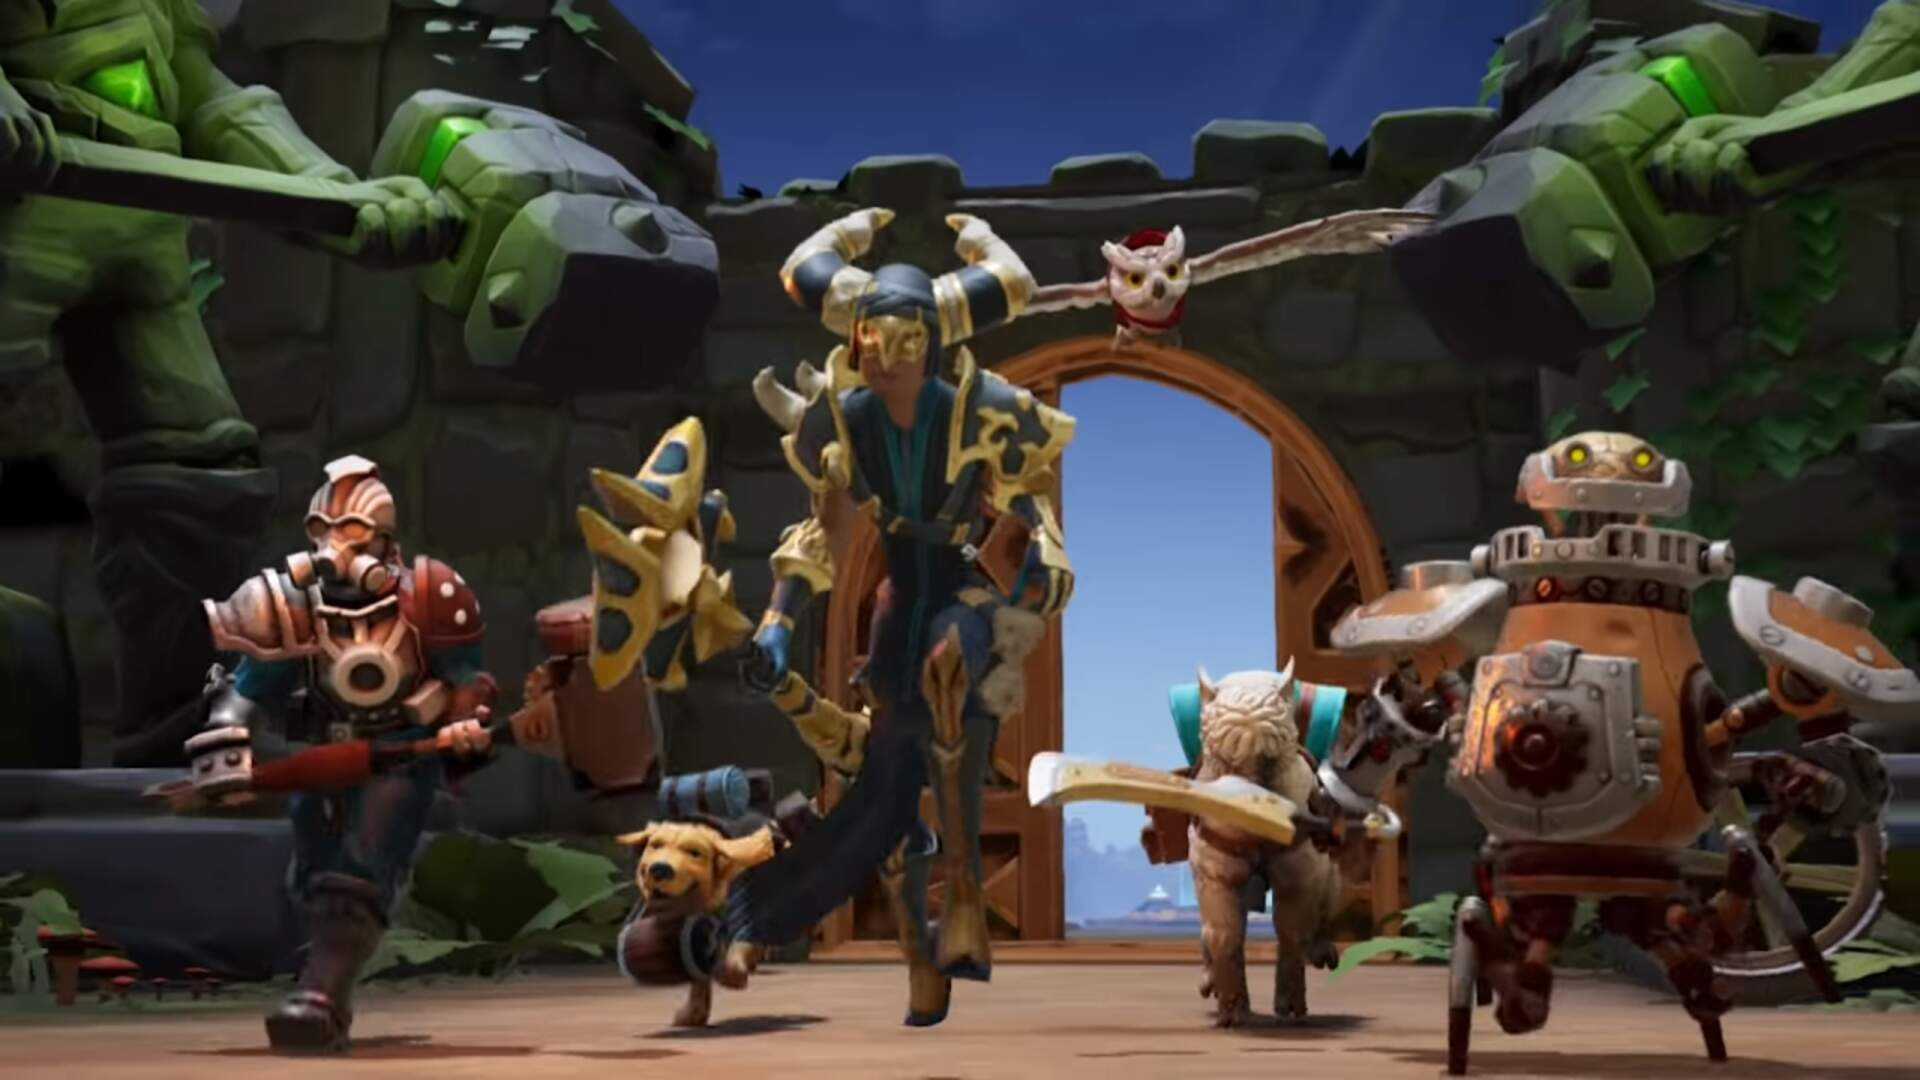 Torchlight Frontiers Is Now Torchlight 3, Coming This Summer as a Premium Game